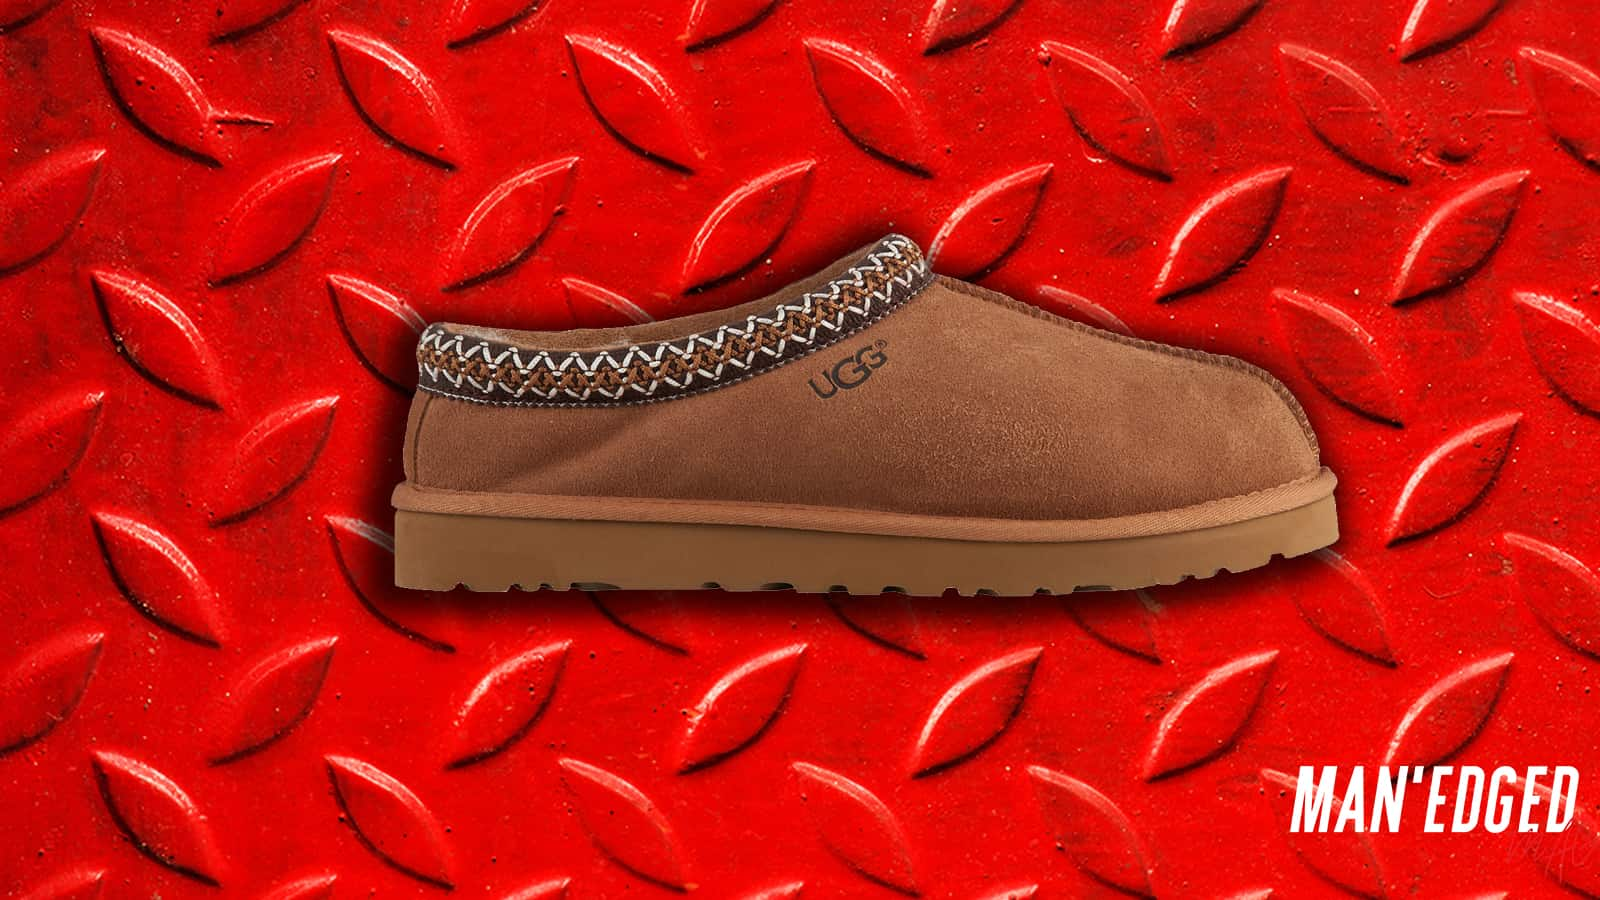 The best gifts for men - our top 19 gifting ideas that guys will love - men's UGG tasman slippers from Footlocker.com